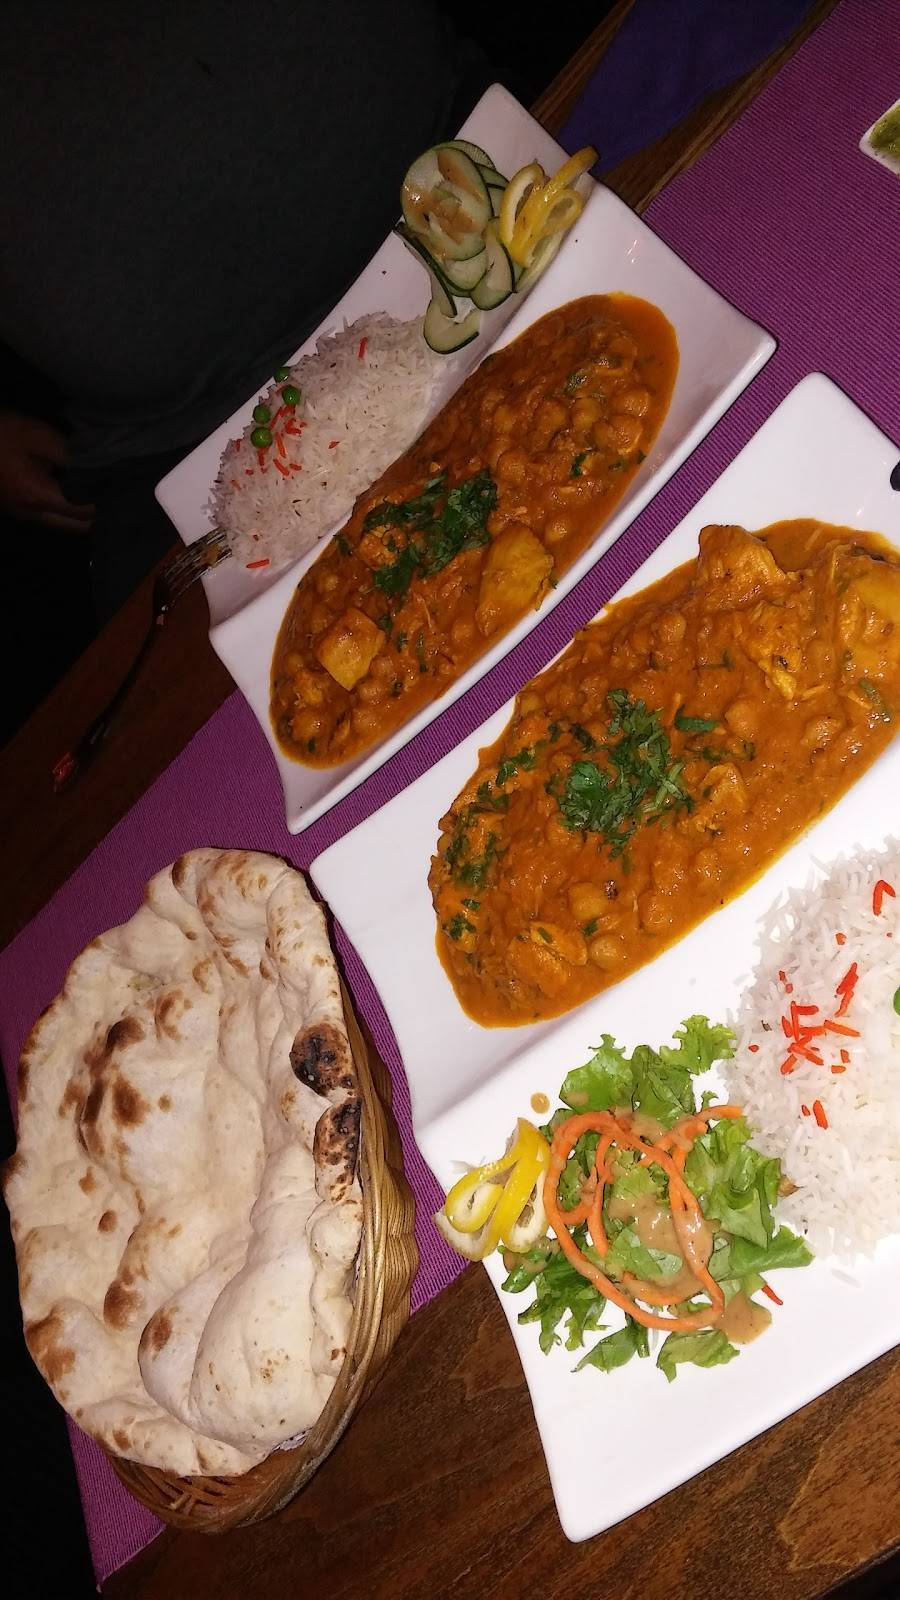 Indian Spice | restaurant | 4320, 351 7th Ave, Brooklyn, NY 11215, USA | 7187687777 OR +1 718-768-7777